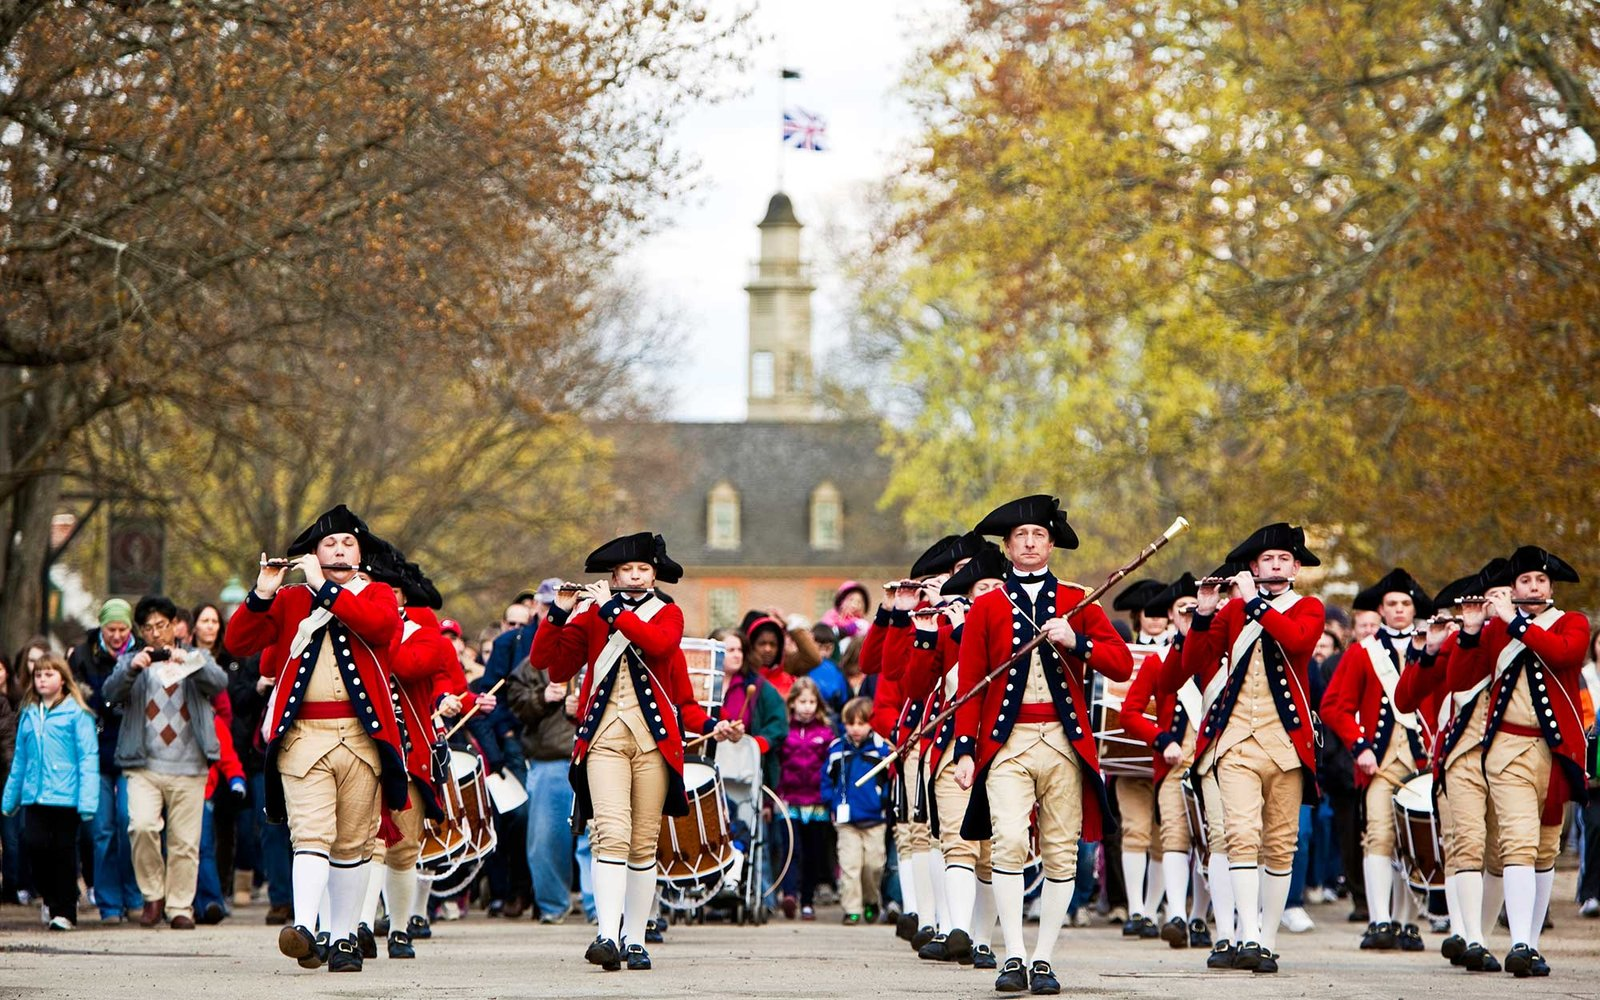 Historic building with marching reenactors